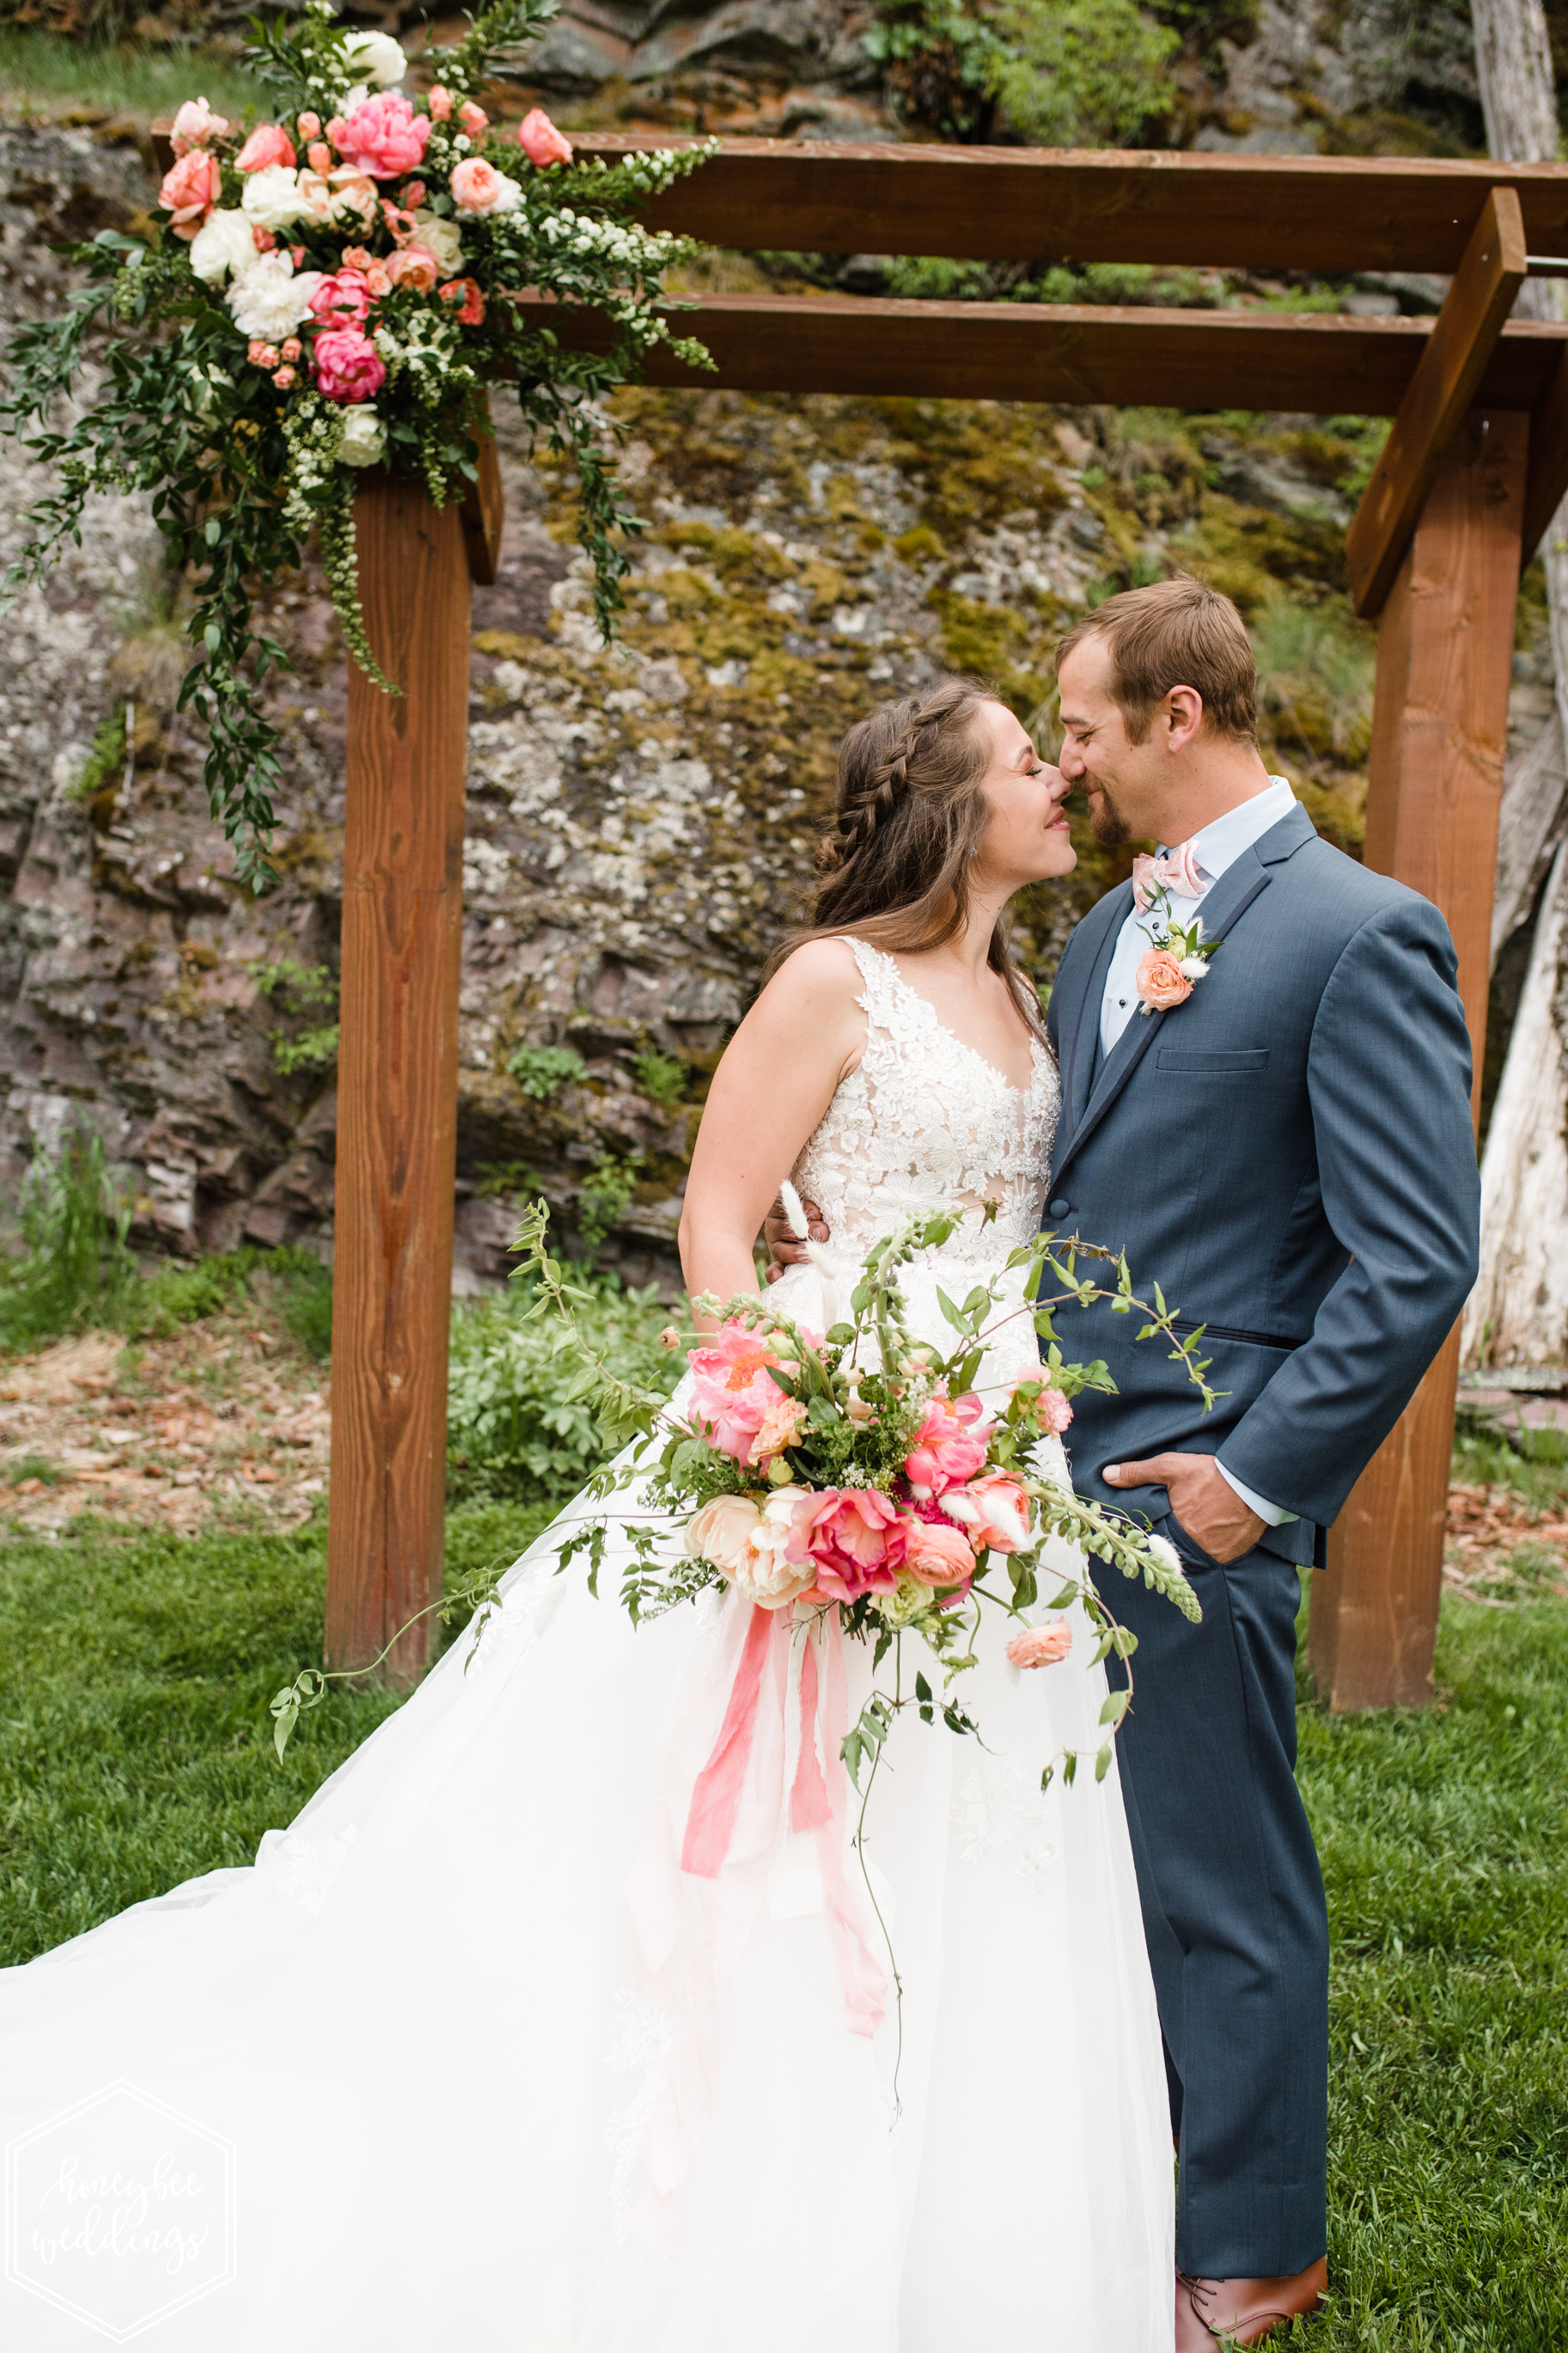 130Coral Mountain Wedding at White Raven_Honeybee Weddings_May 23, 2019-394.jpg